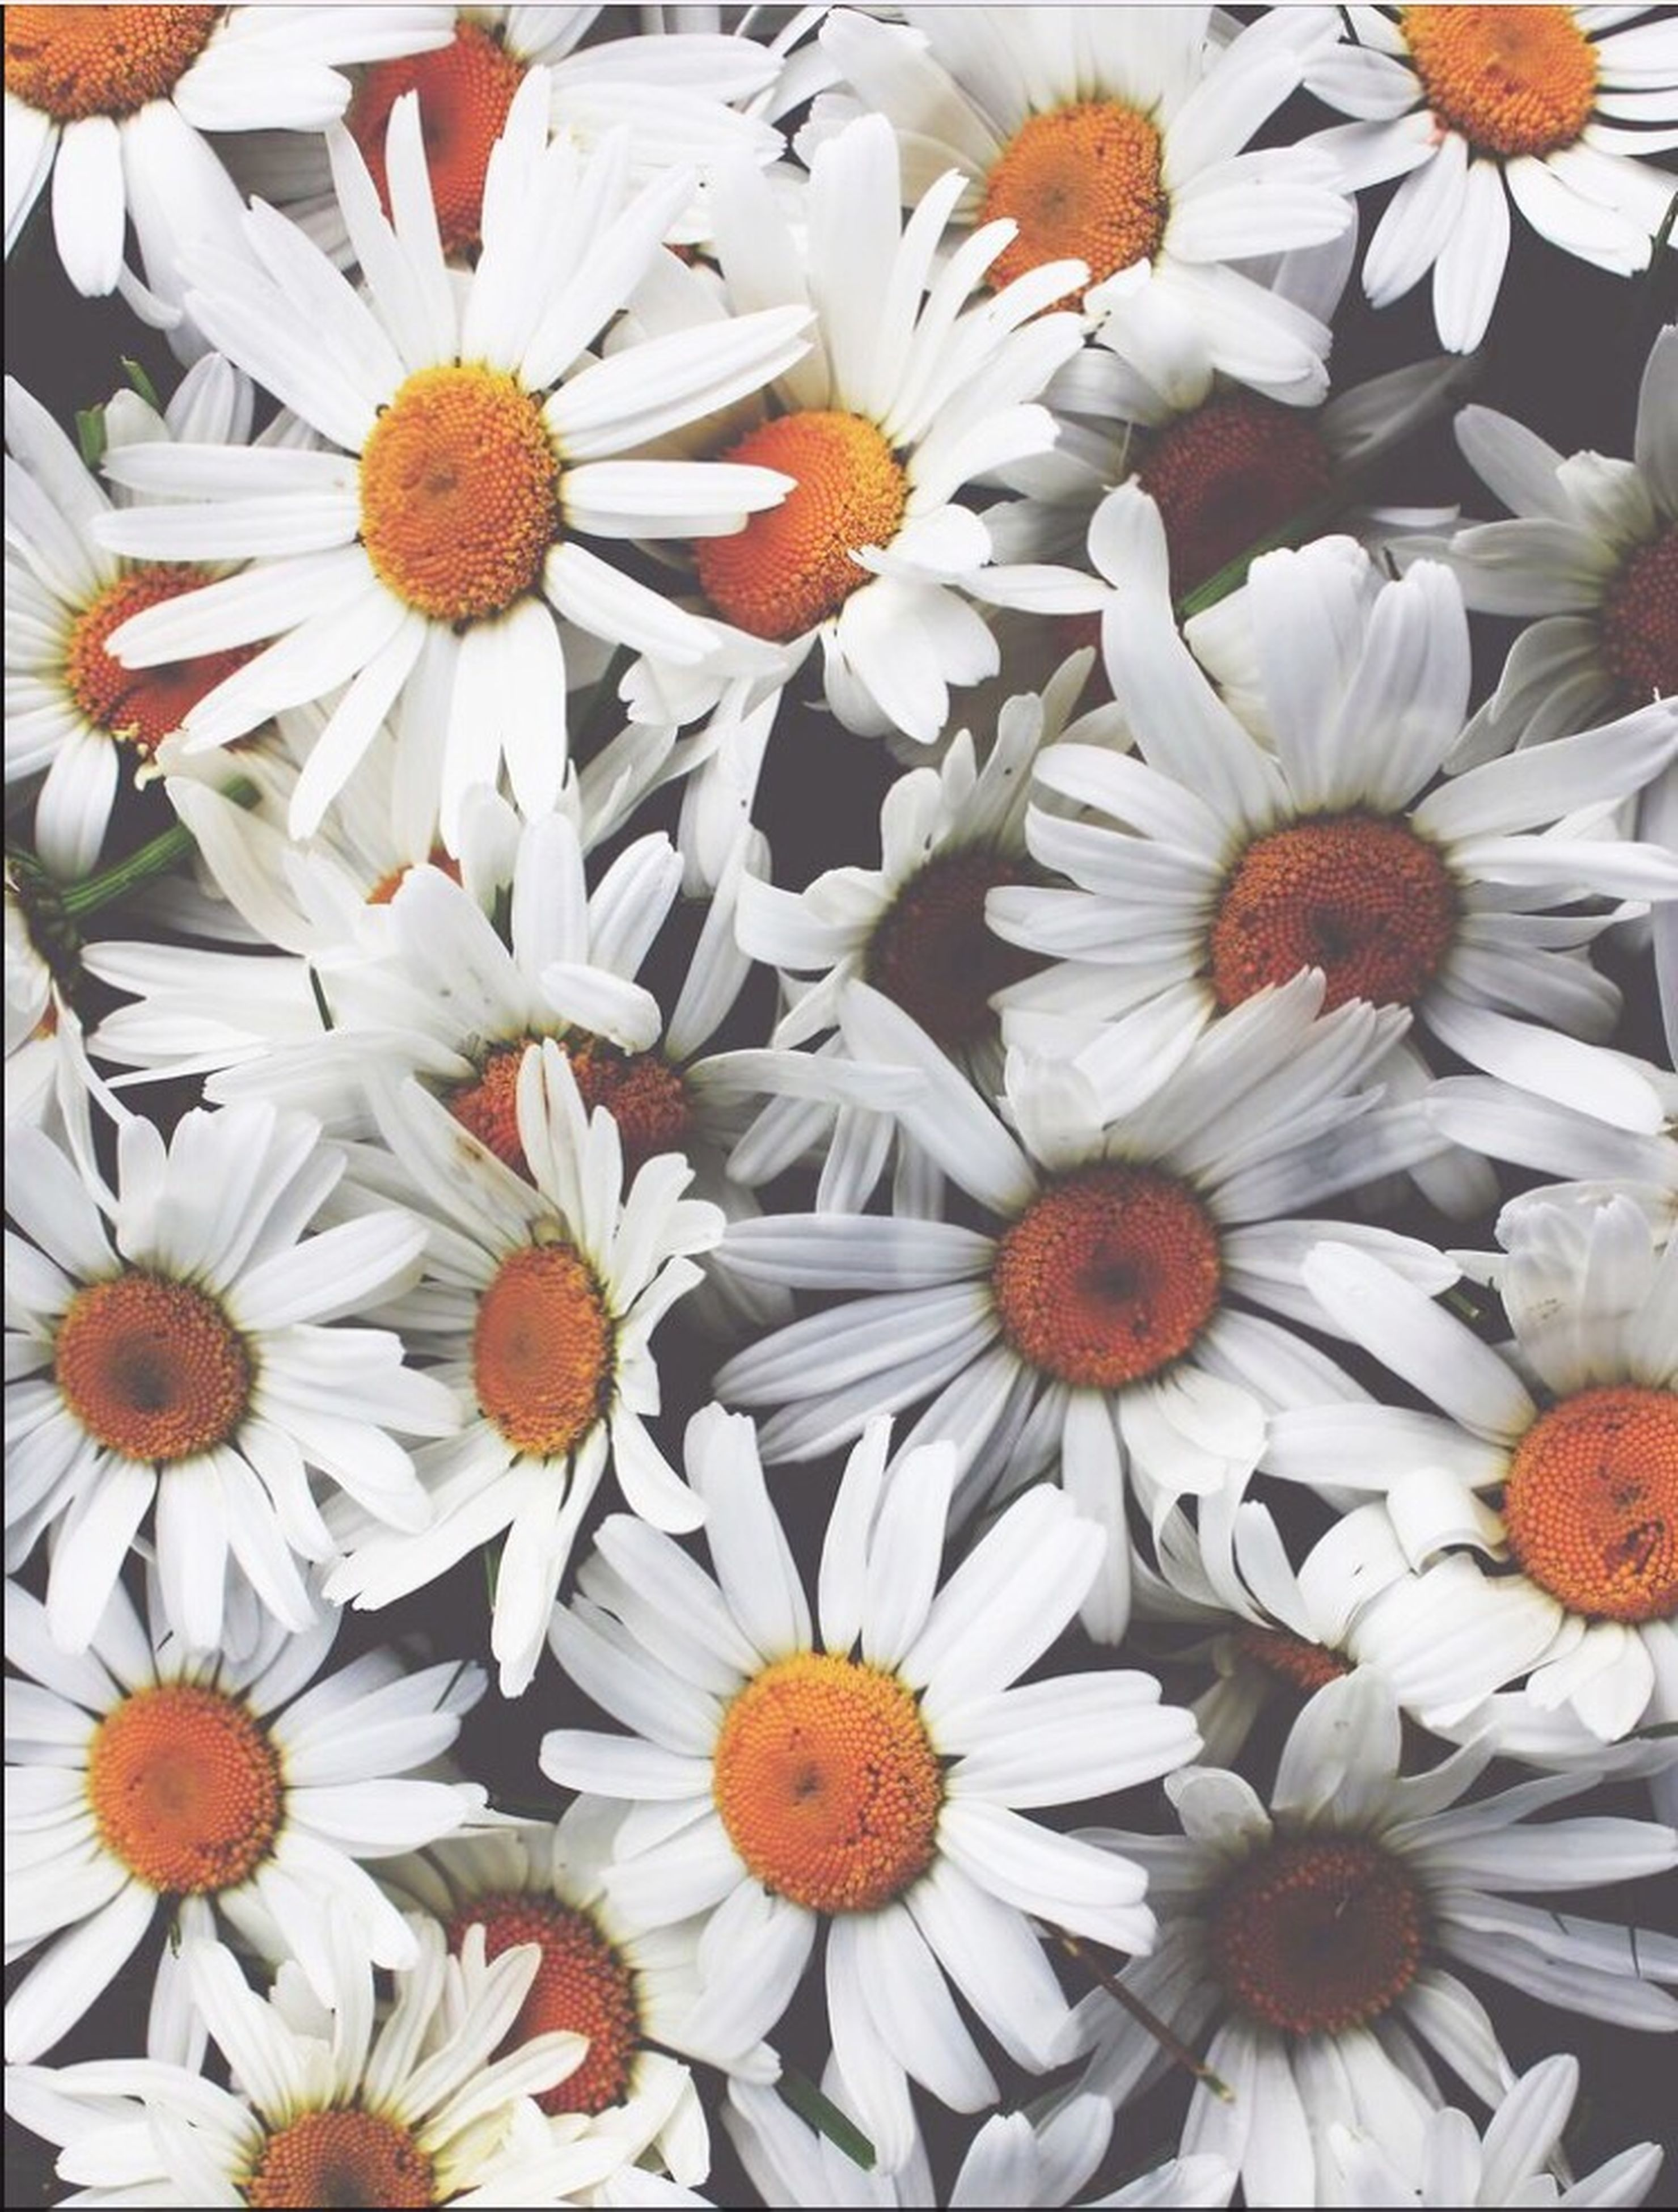 flower, freshness, petal, fragility, flower head, beauty in nature, white color, high angle view, blooming, daisy, nature, abundance, growth, pollen, indoors, plant, close-up, full frame, no people, in bloom